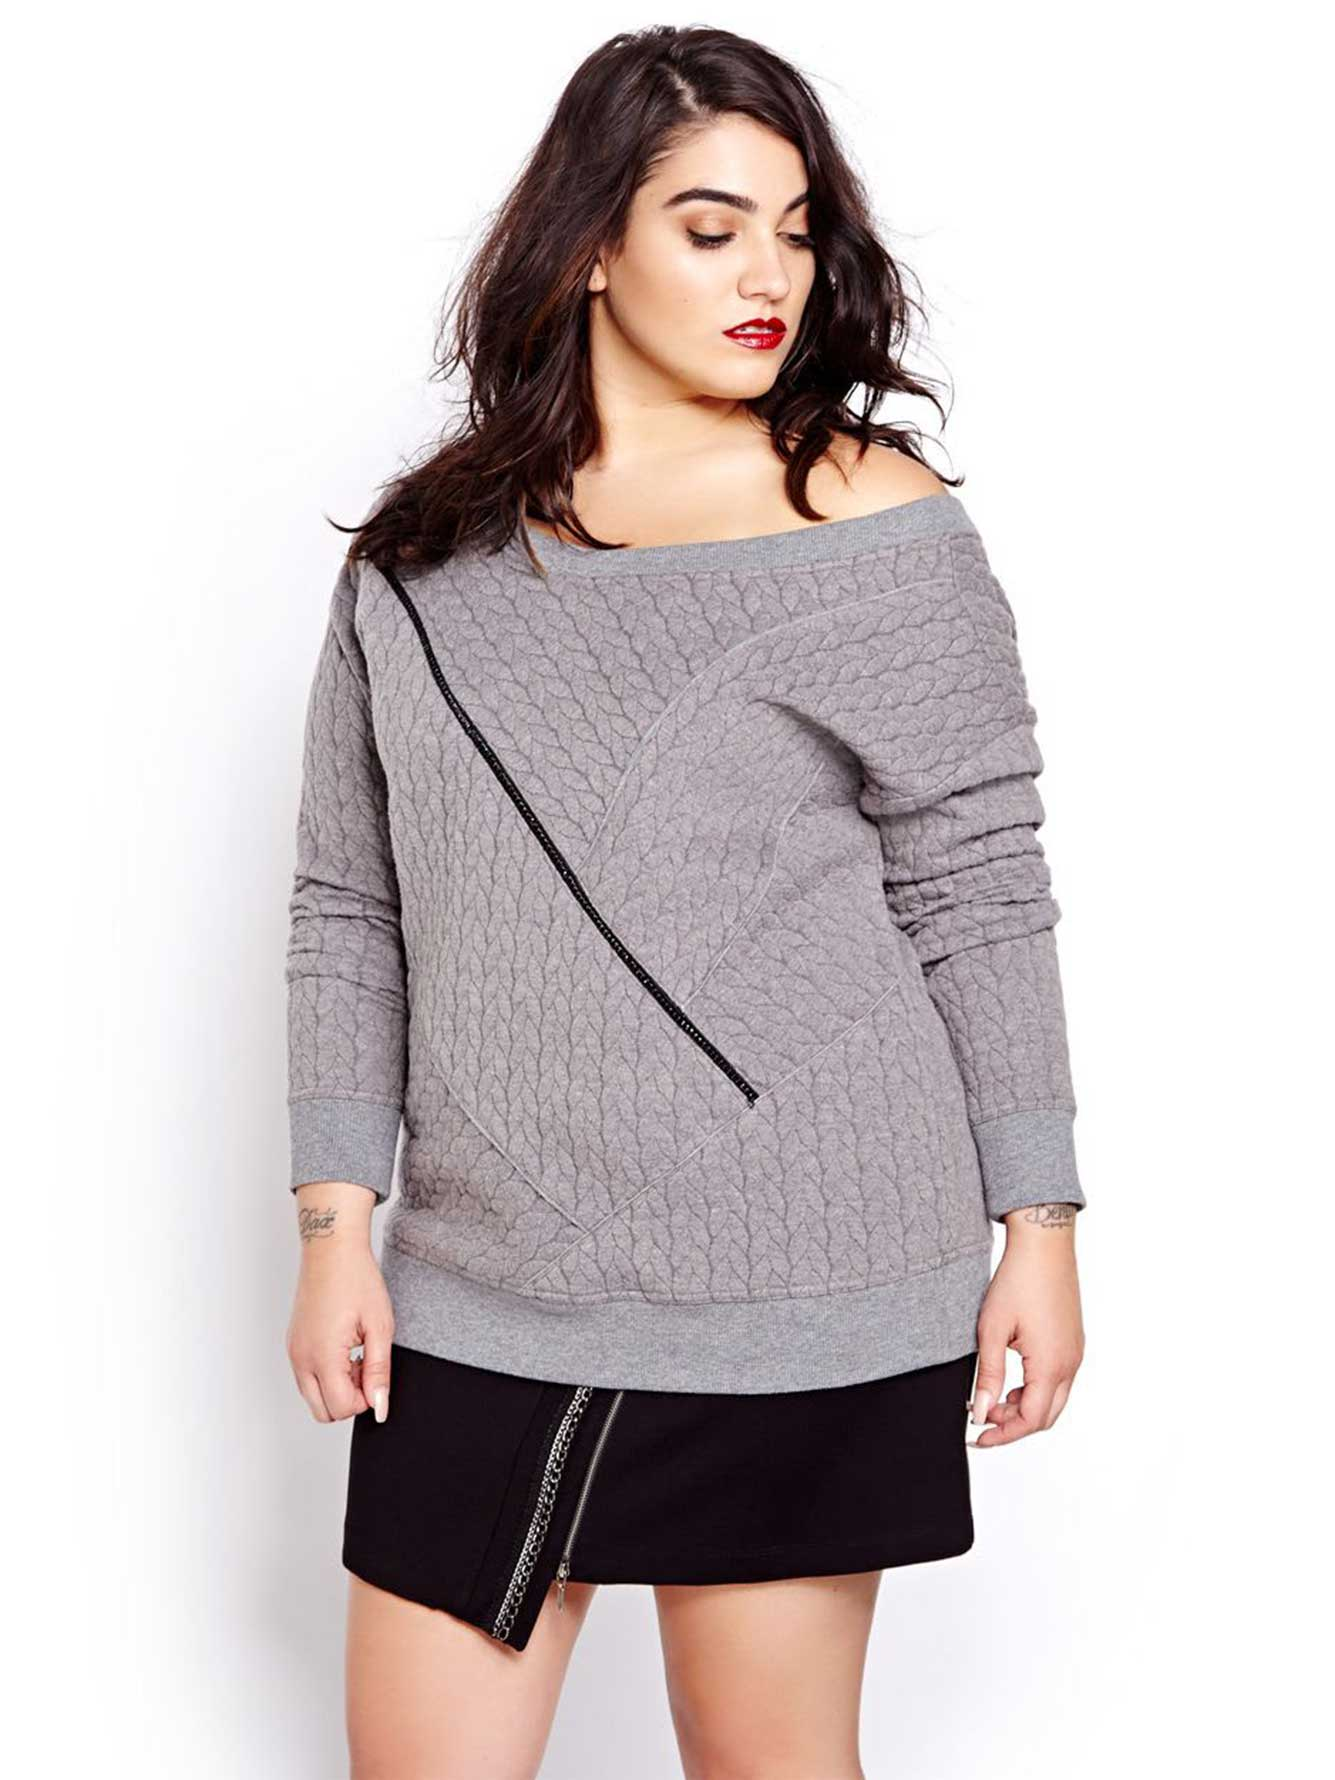 c3ee0f22b0e Nadia Aboulhosn Cable Knit Sweat Shirt for L L